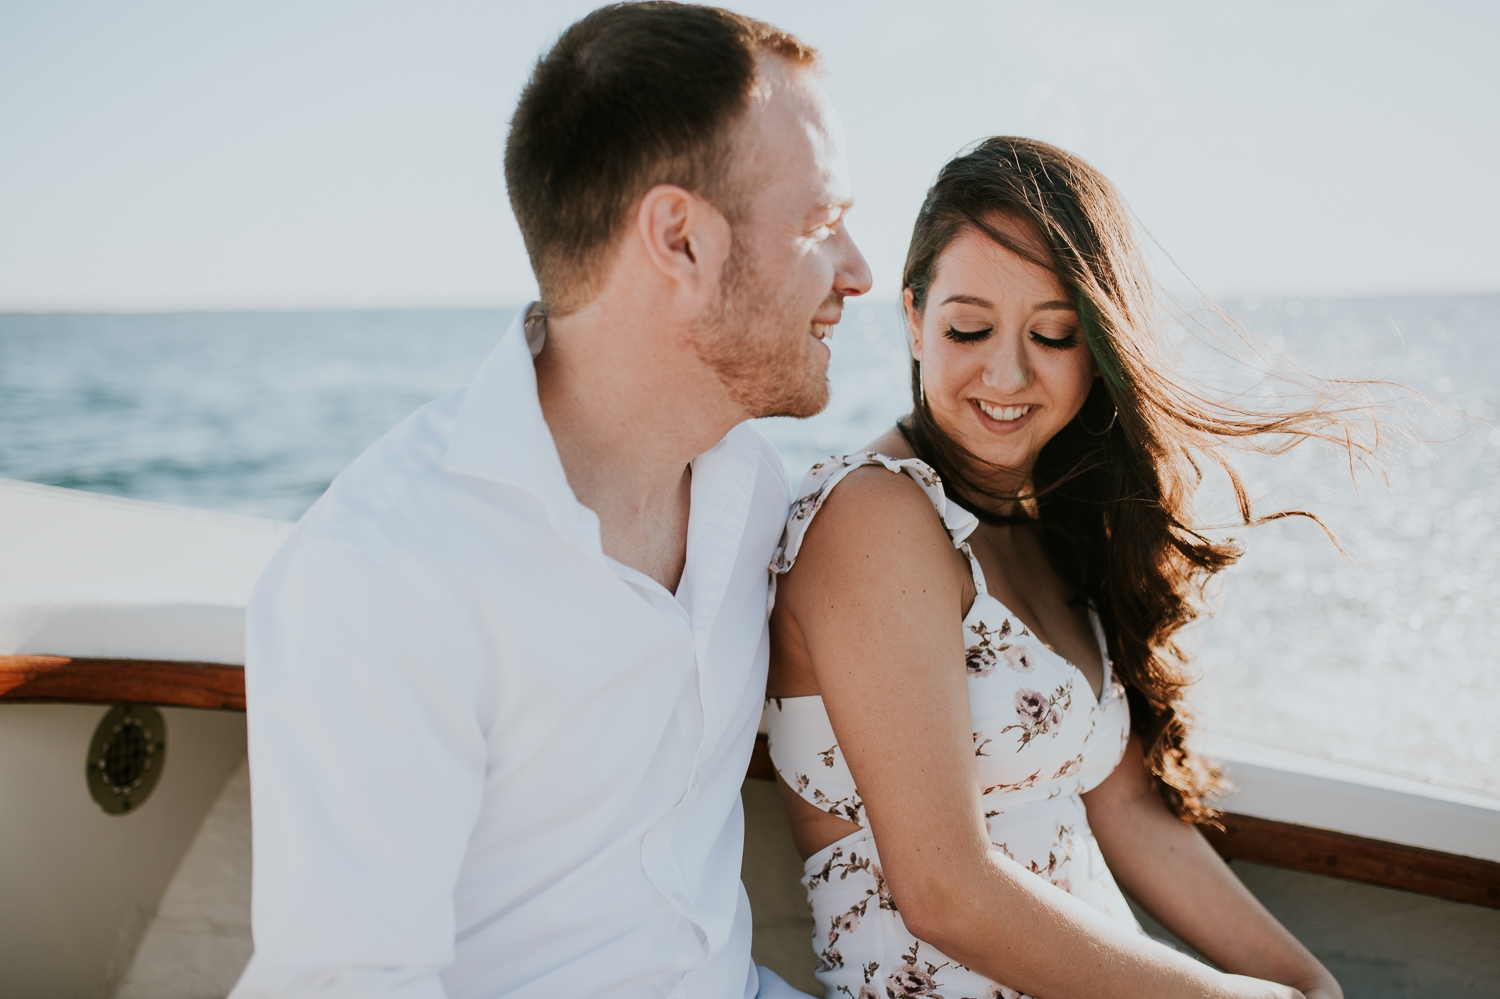 ho-hum-beach-boat-ride-engagement-photography-bellport-new-york 3.jpg